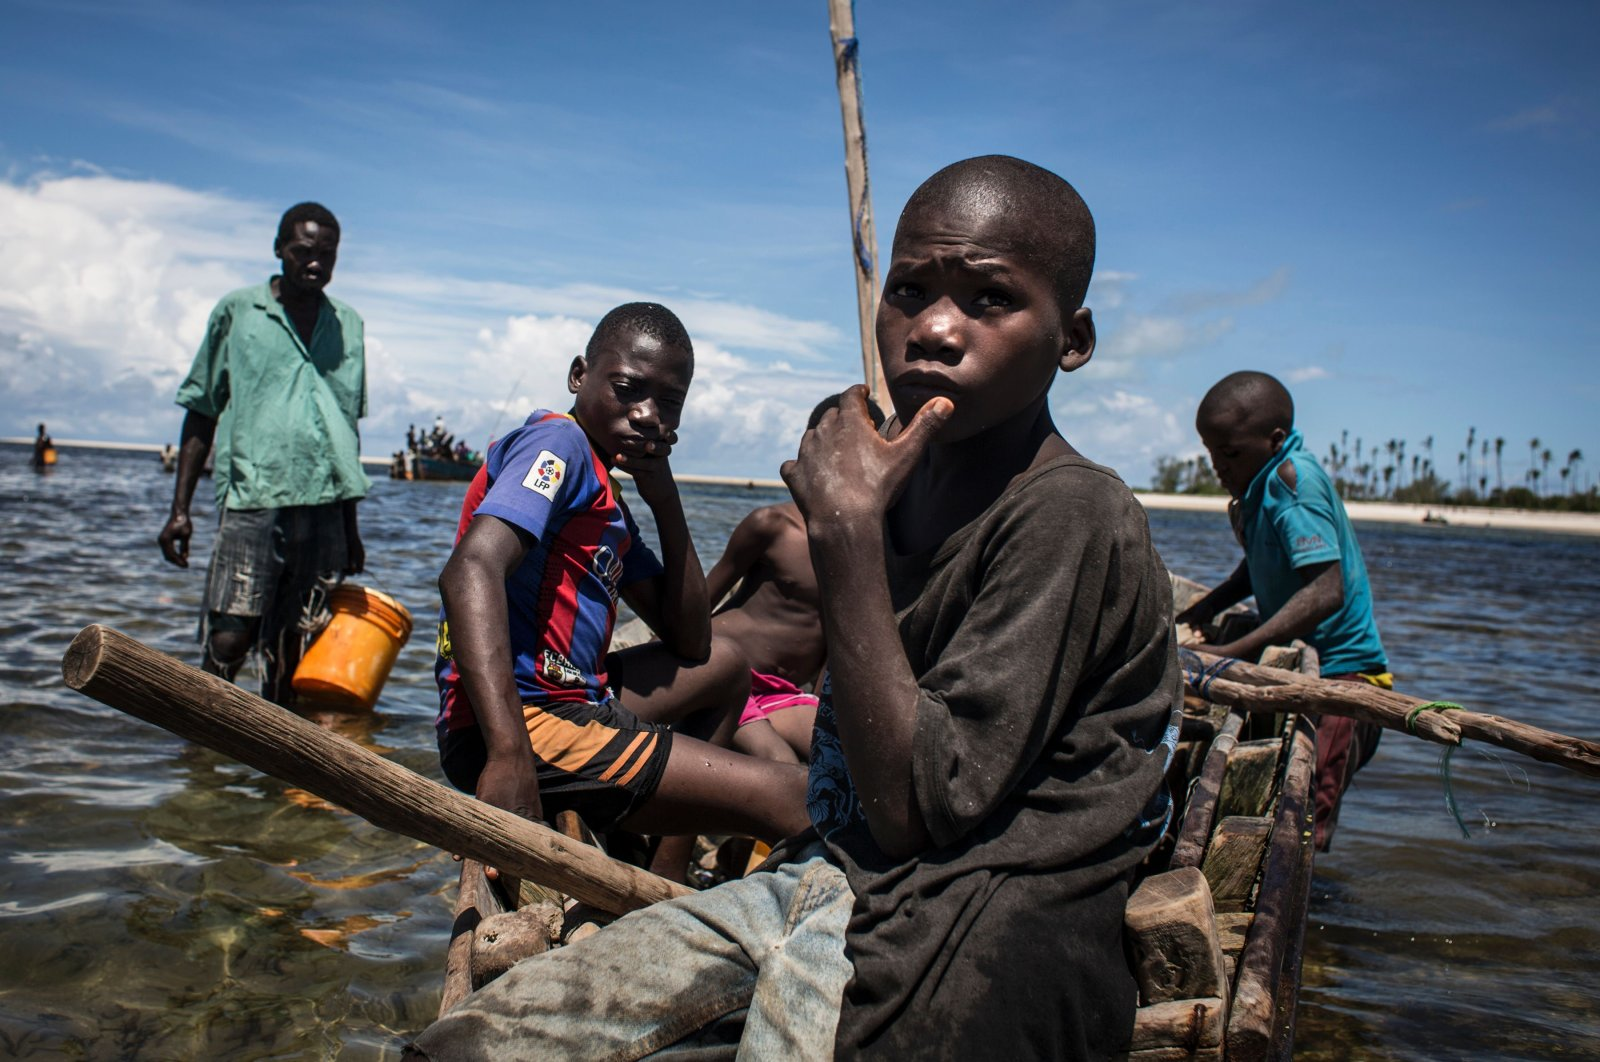 Young Mozambican fishermen return to shore after several days of fishing in Palma, where large deposits of natural gas were found offshore, Palma, Mozambique, Feb. 16, 2017. (AFP Photo)